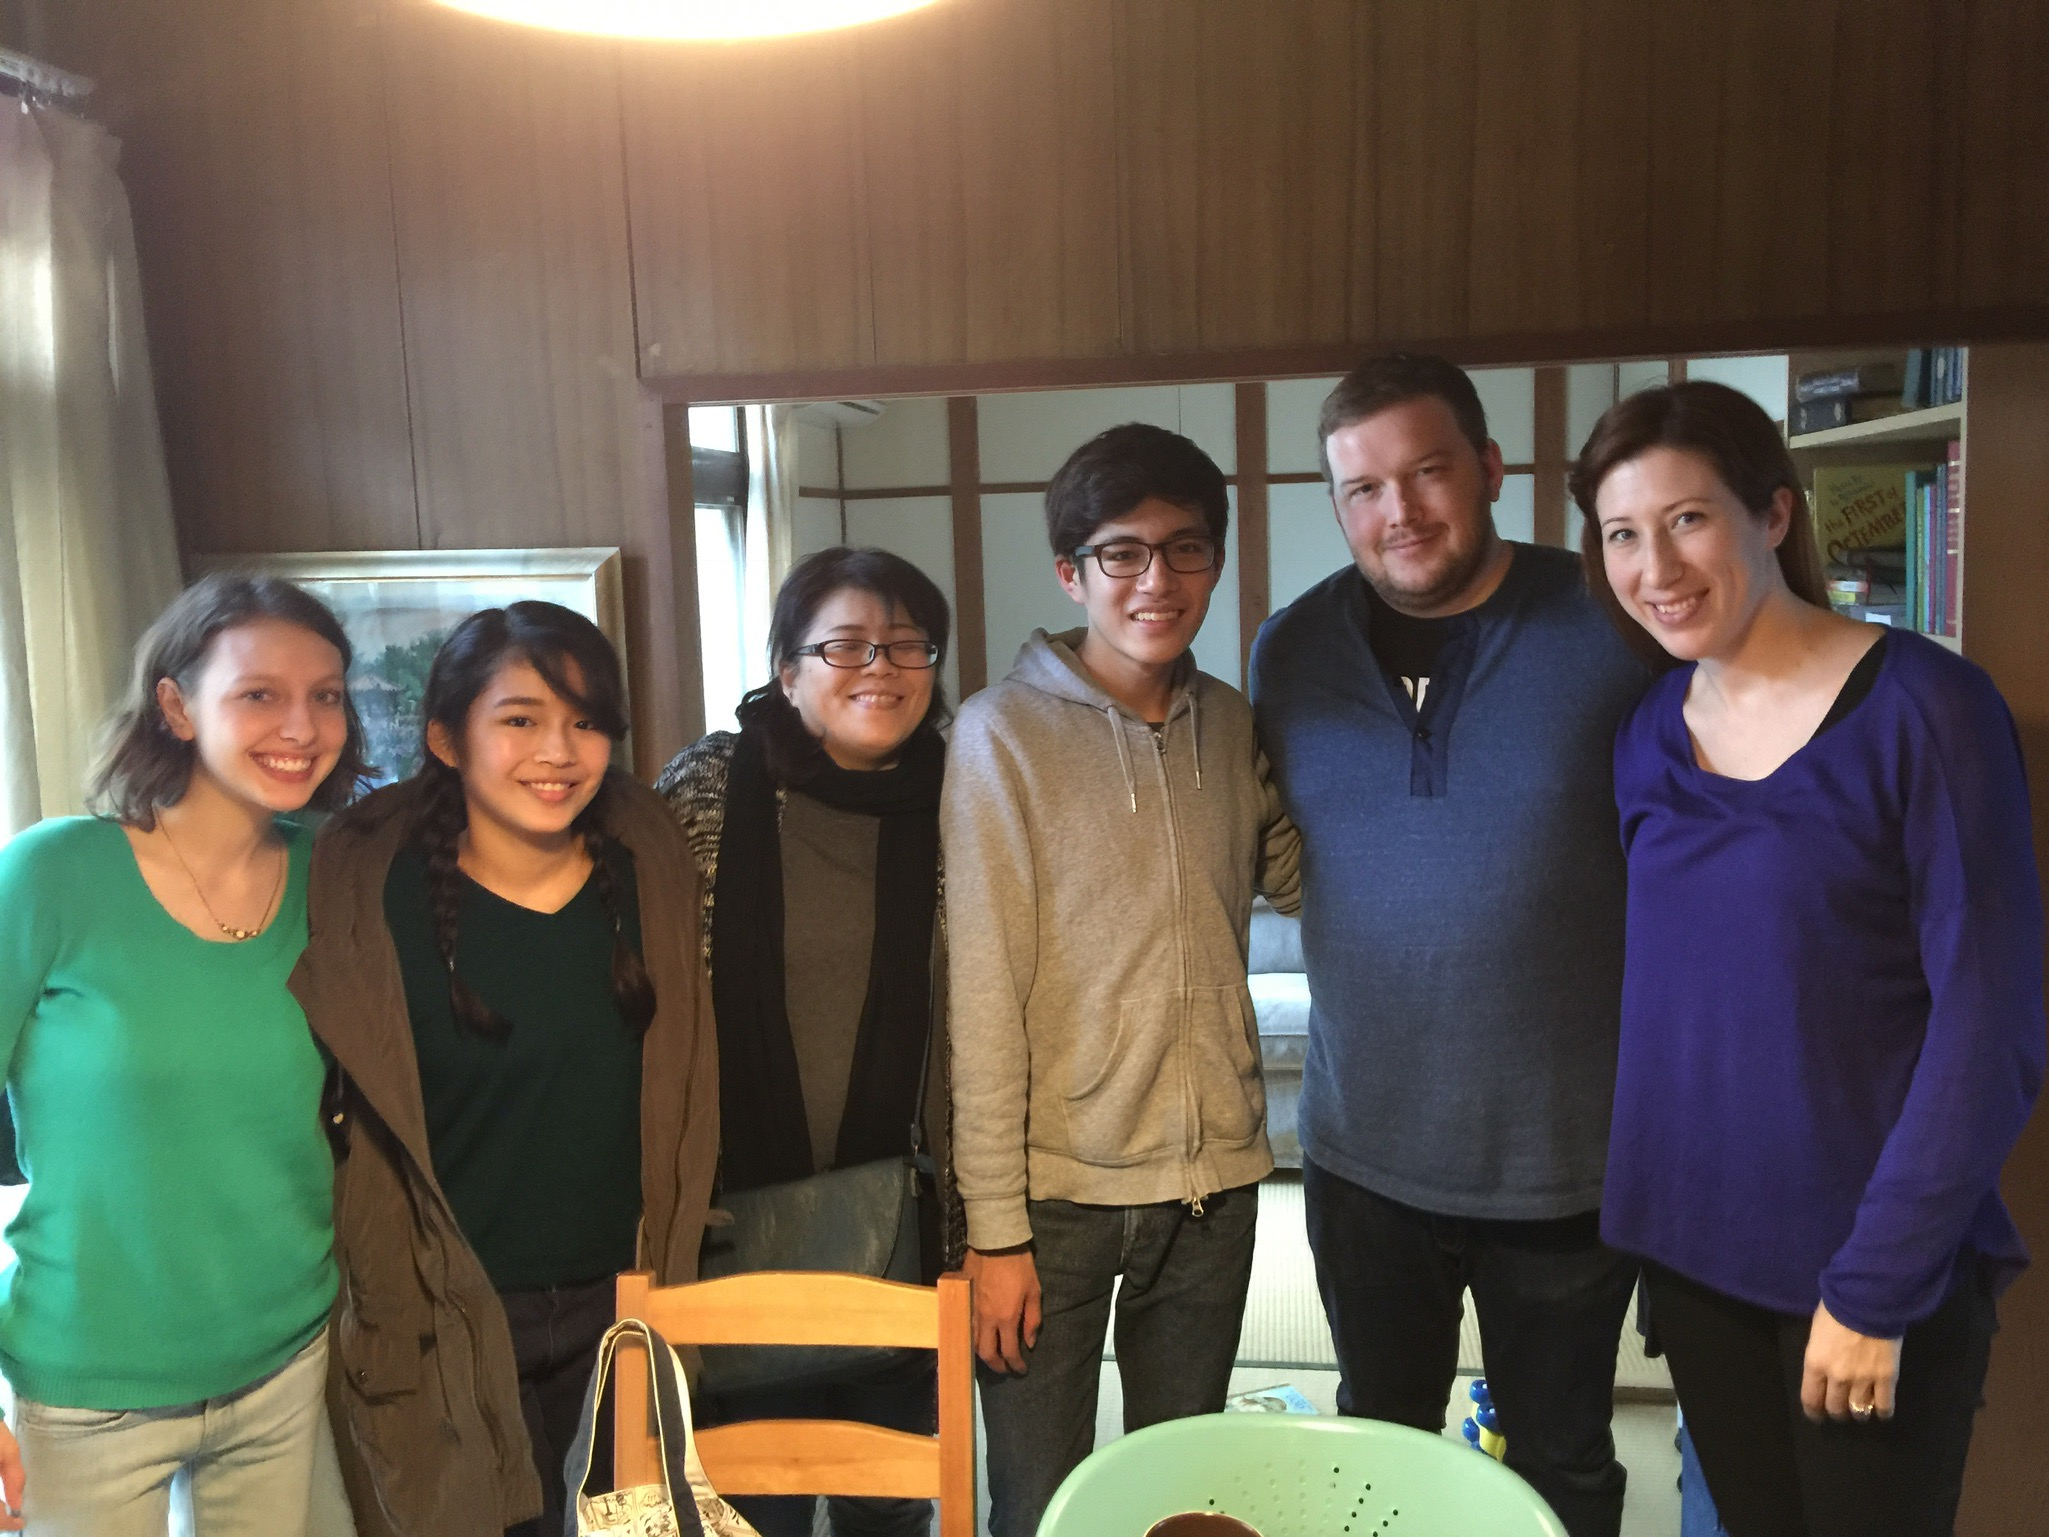 An amazing Japanese family that came over to Joseph and Whitney's cute little Japanese house for tea. Their family is Christian and they even do homeschooling. This is unheard of in Japan.